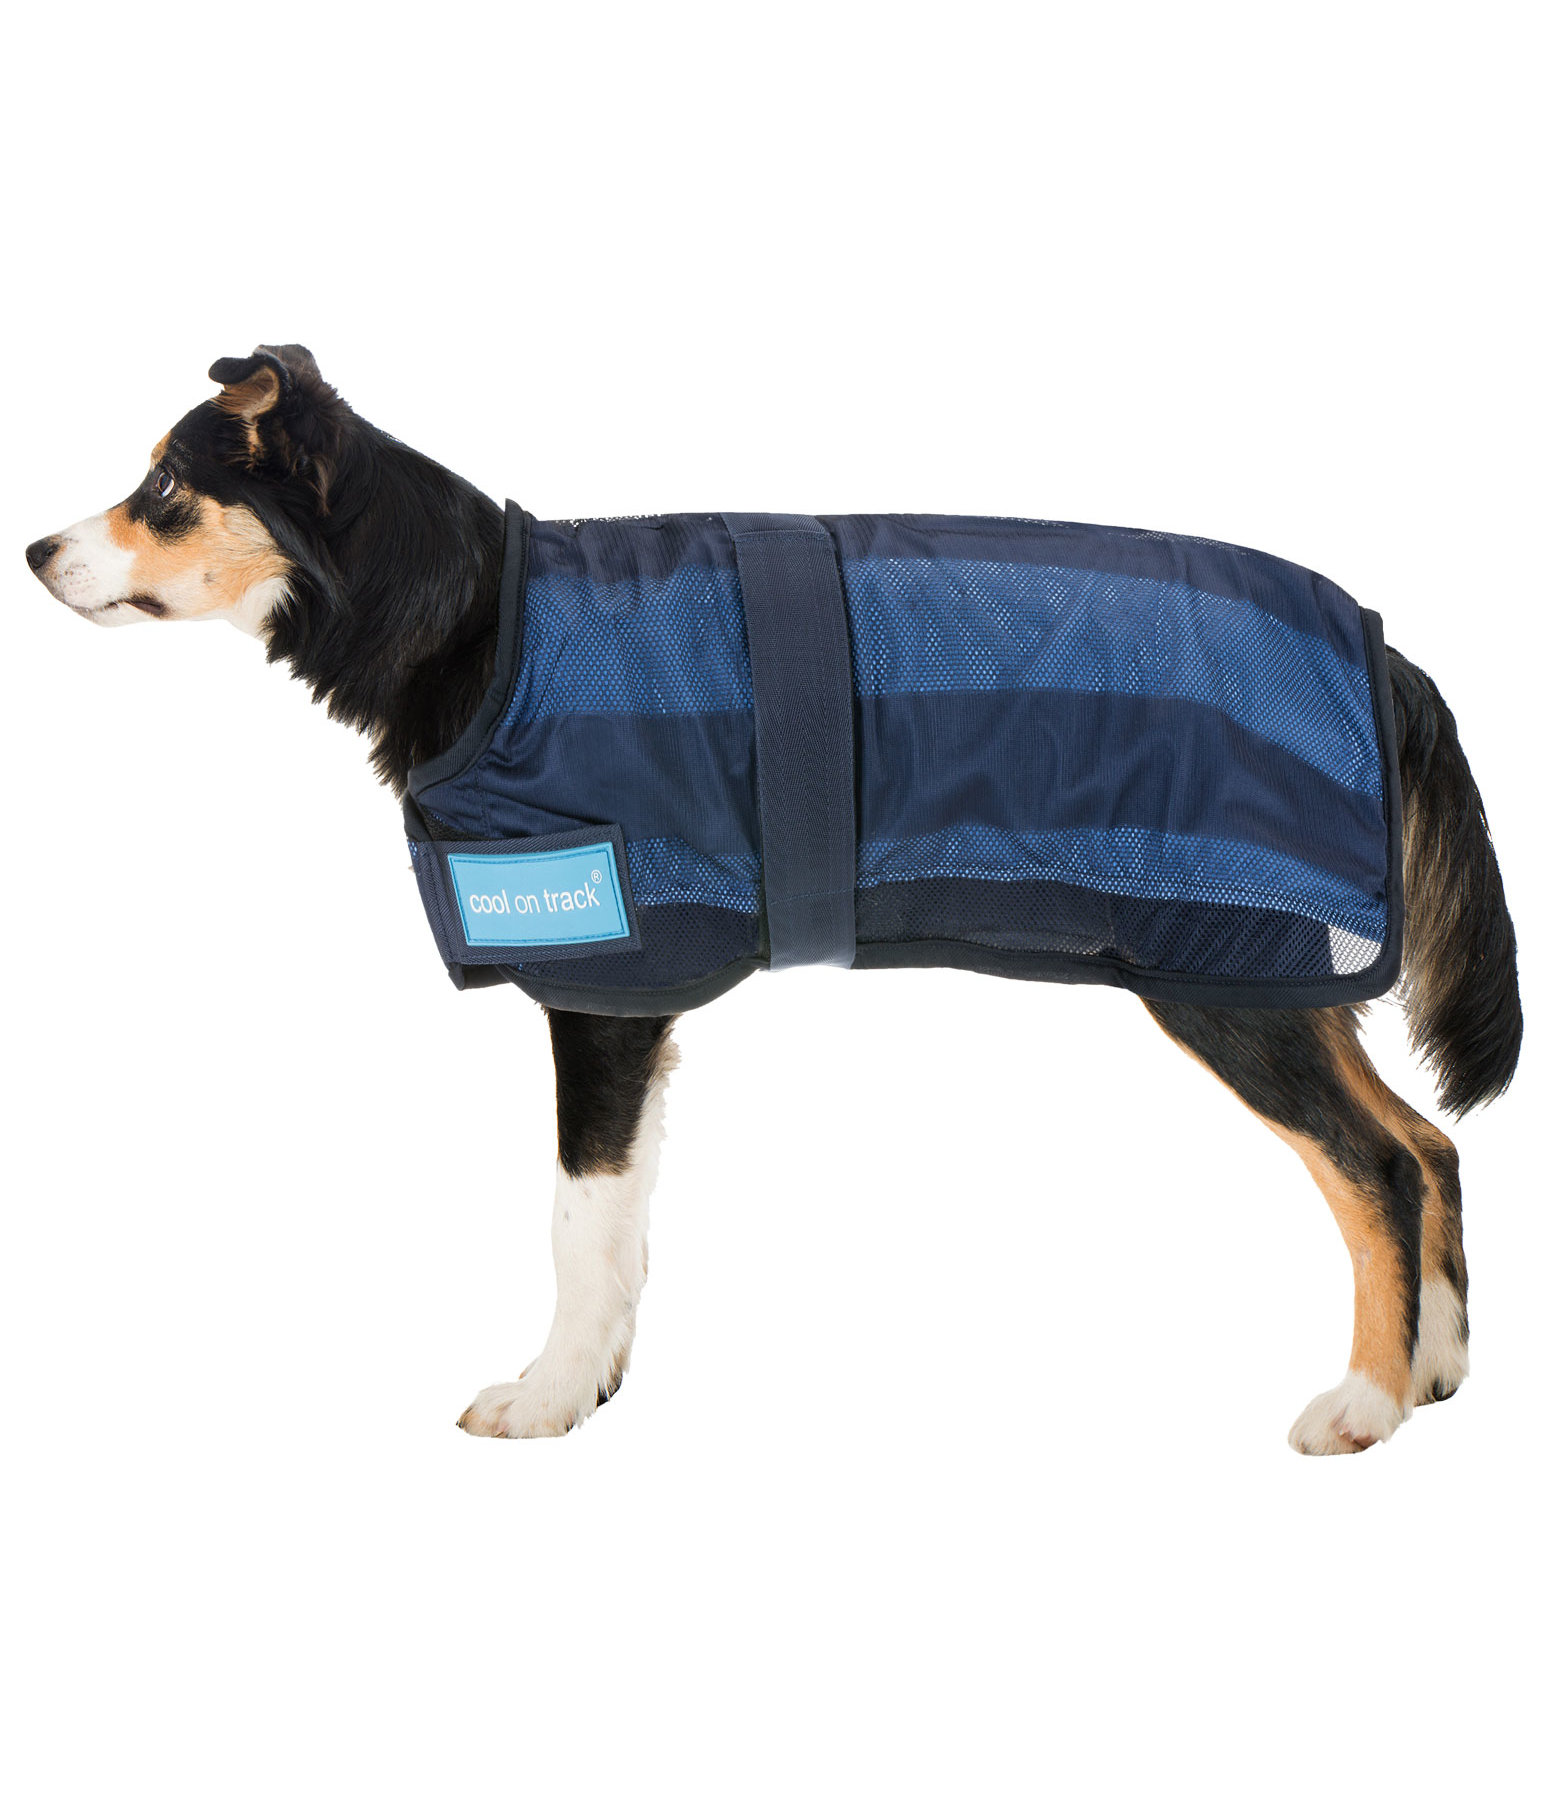 Cool on Track Dog Coat with Cooling Function